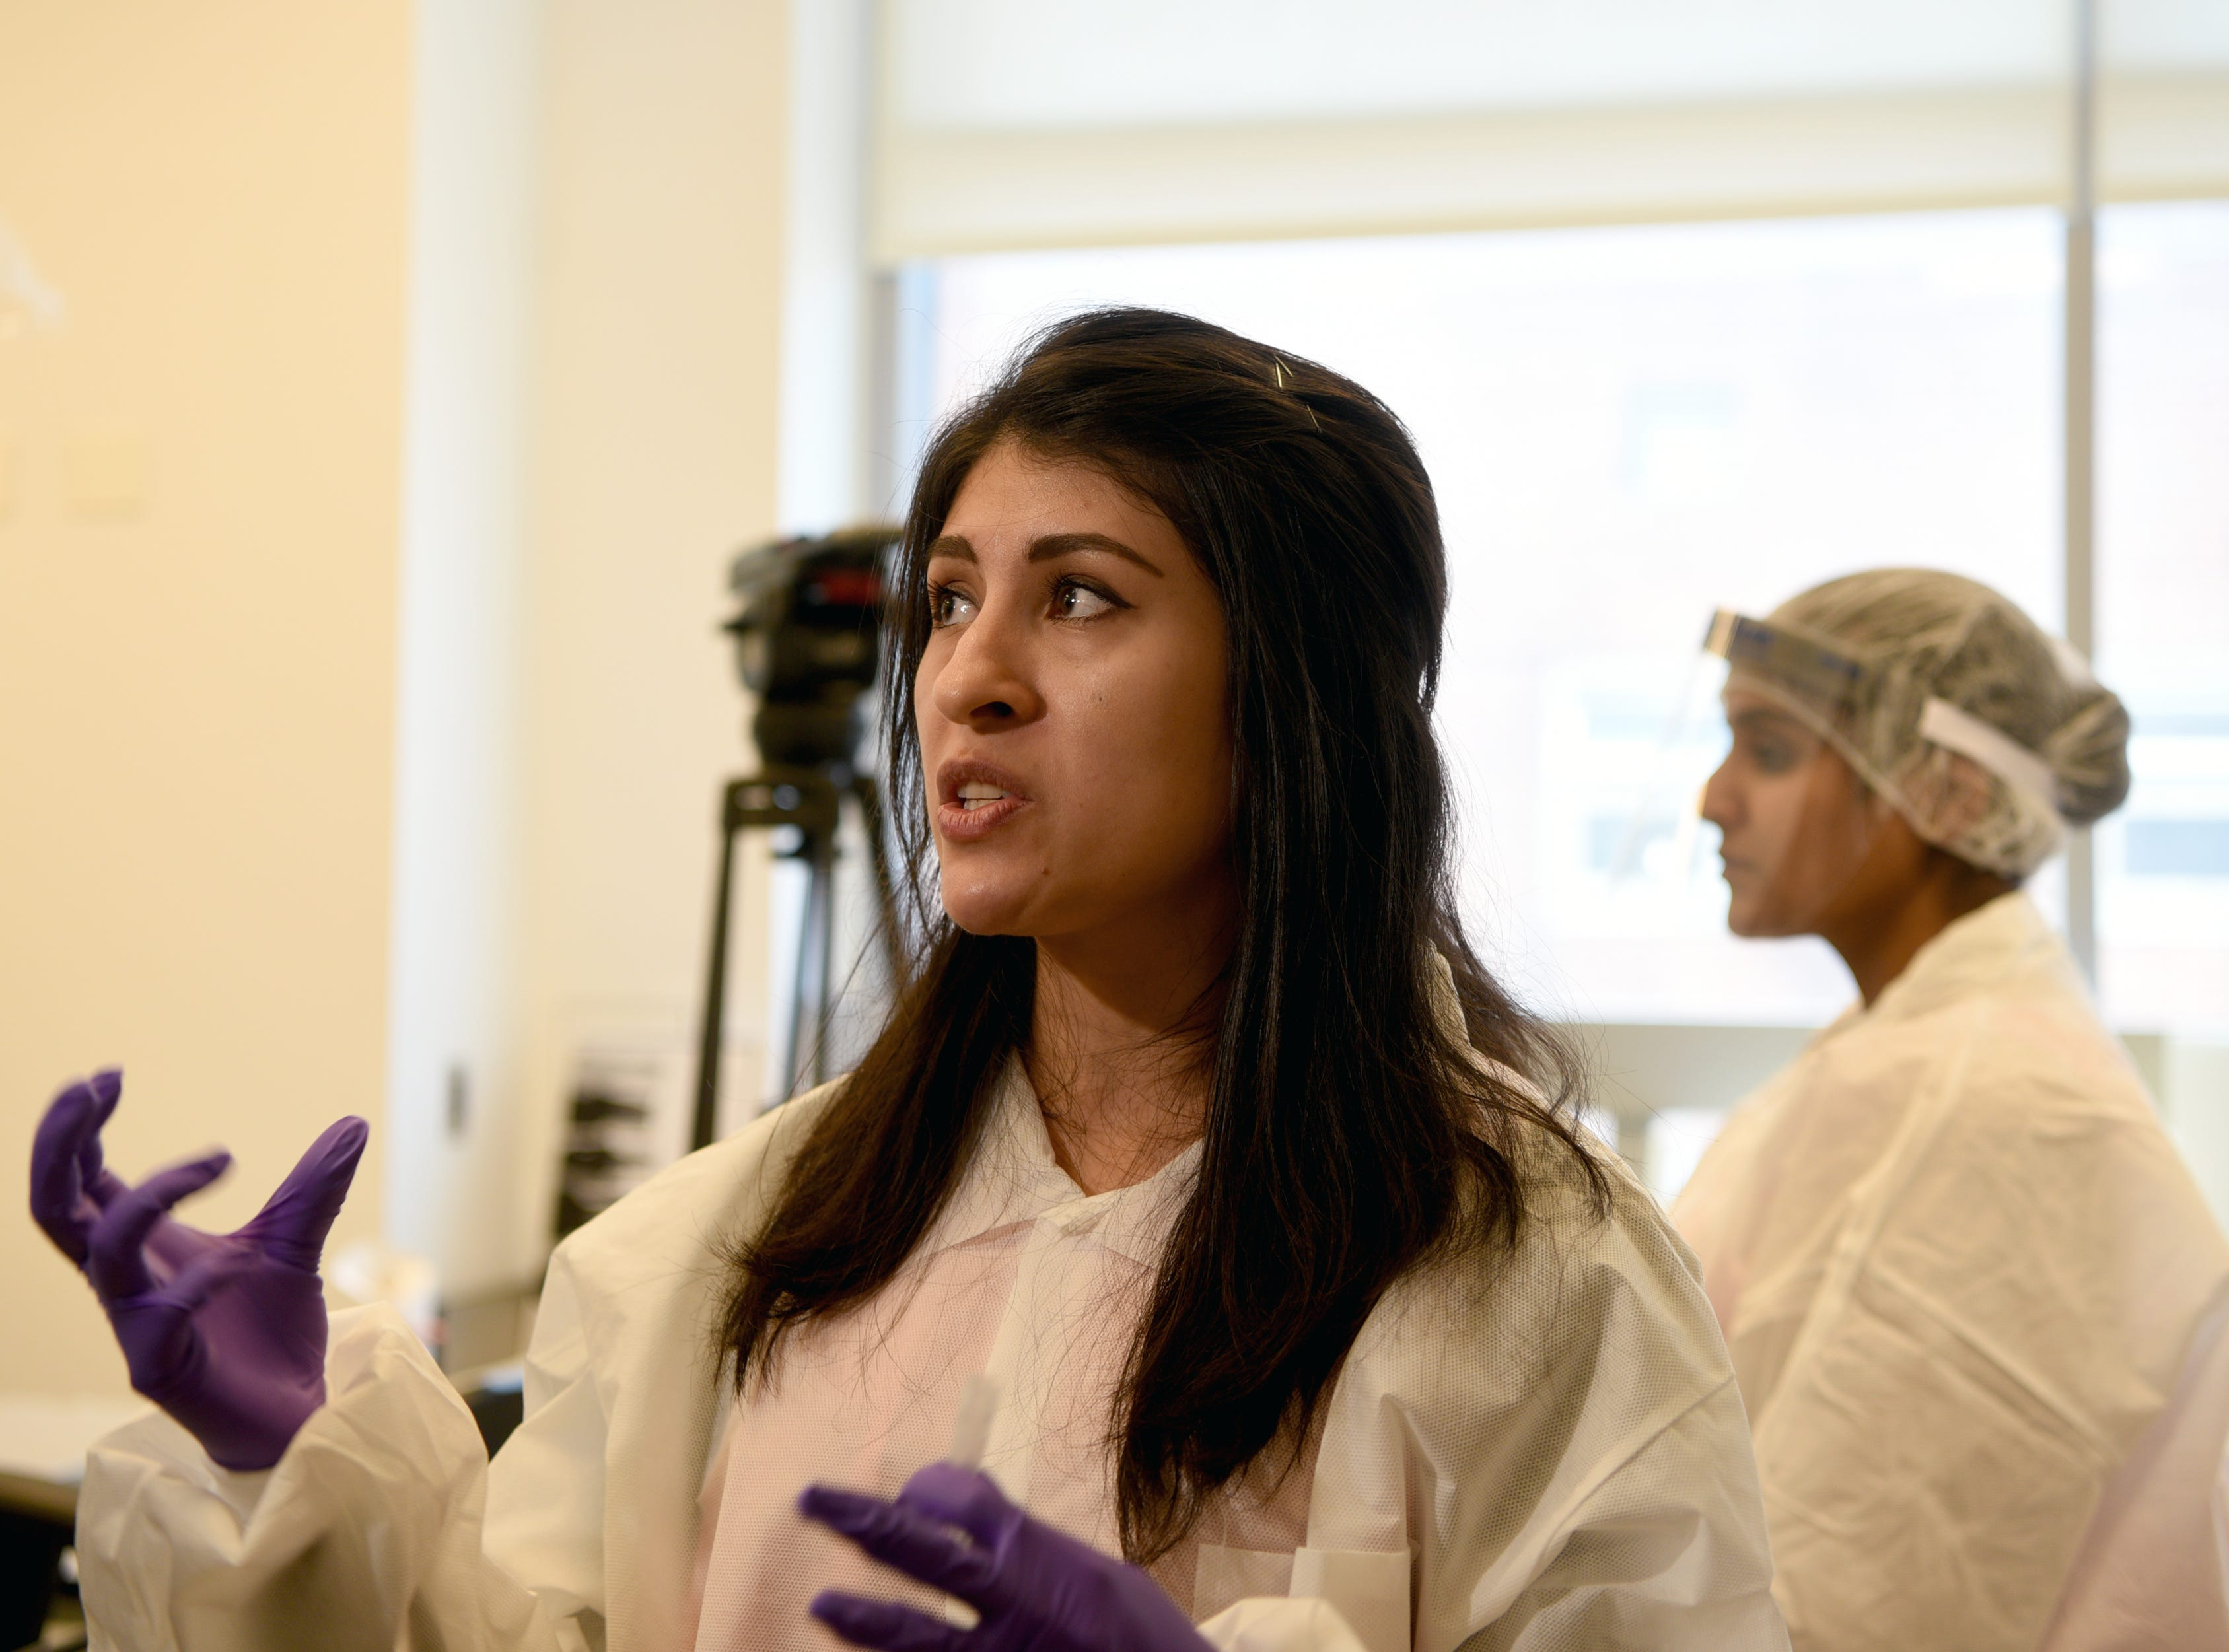 Veronica Cano, a criminalist with the New York City Office of Chief Medical Examiner, explains the process used to isolate and purify DNA in helping to identify remains of deceased victims. The unit handles DNA testing for unidentified persons, including victims of the attacks on the World Trade Center on 9/11.